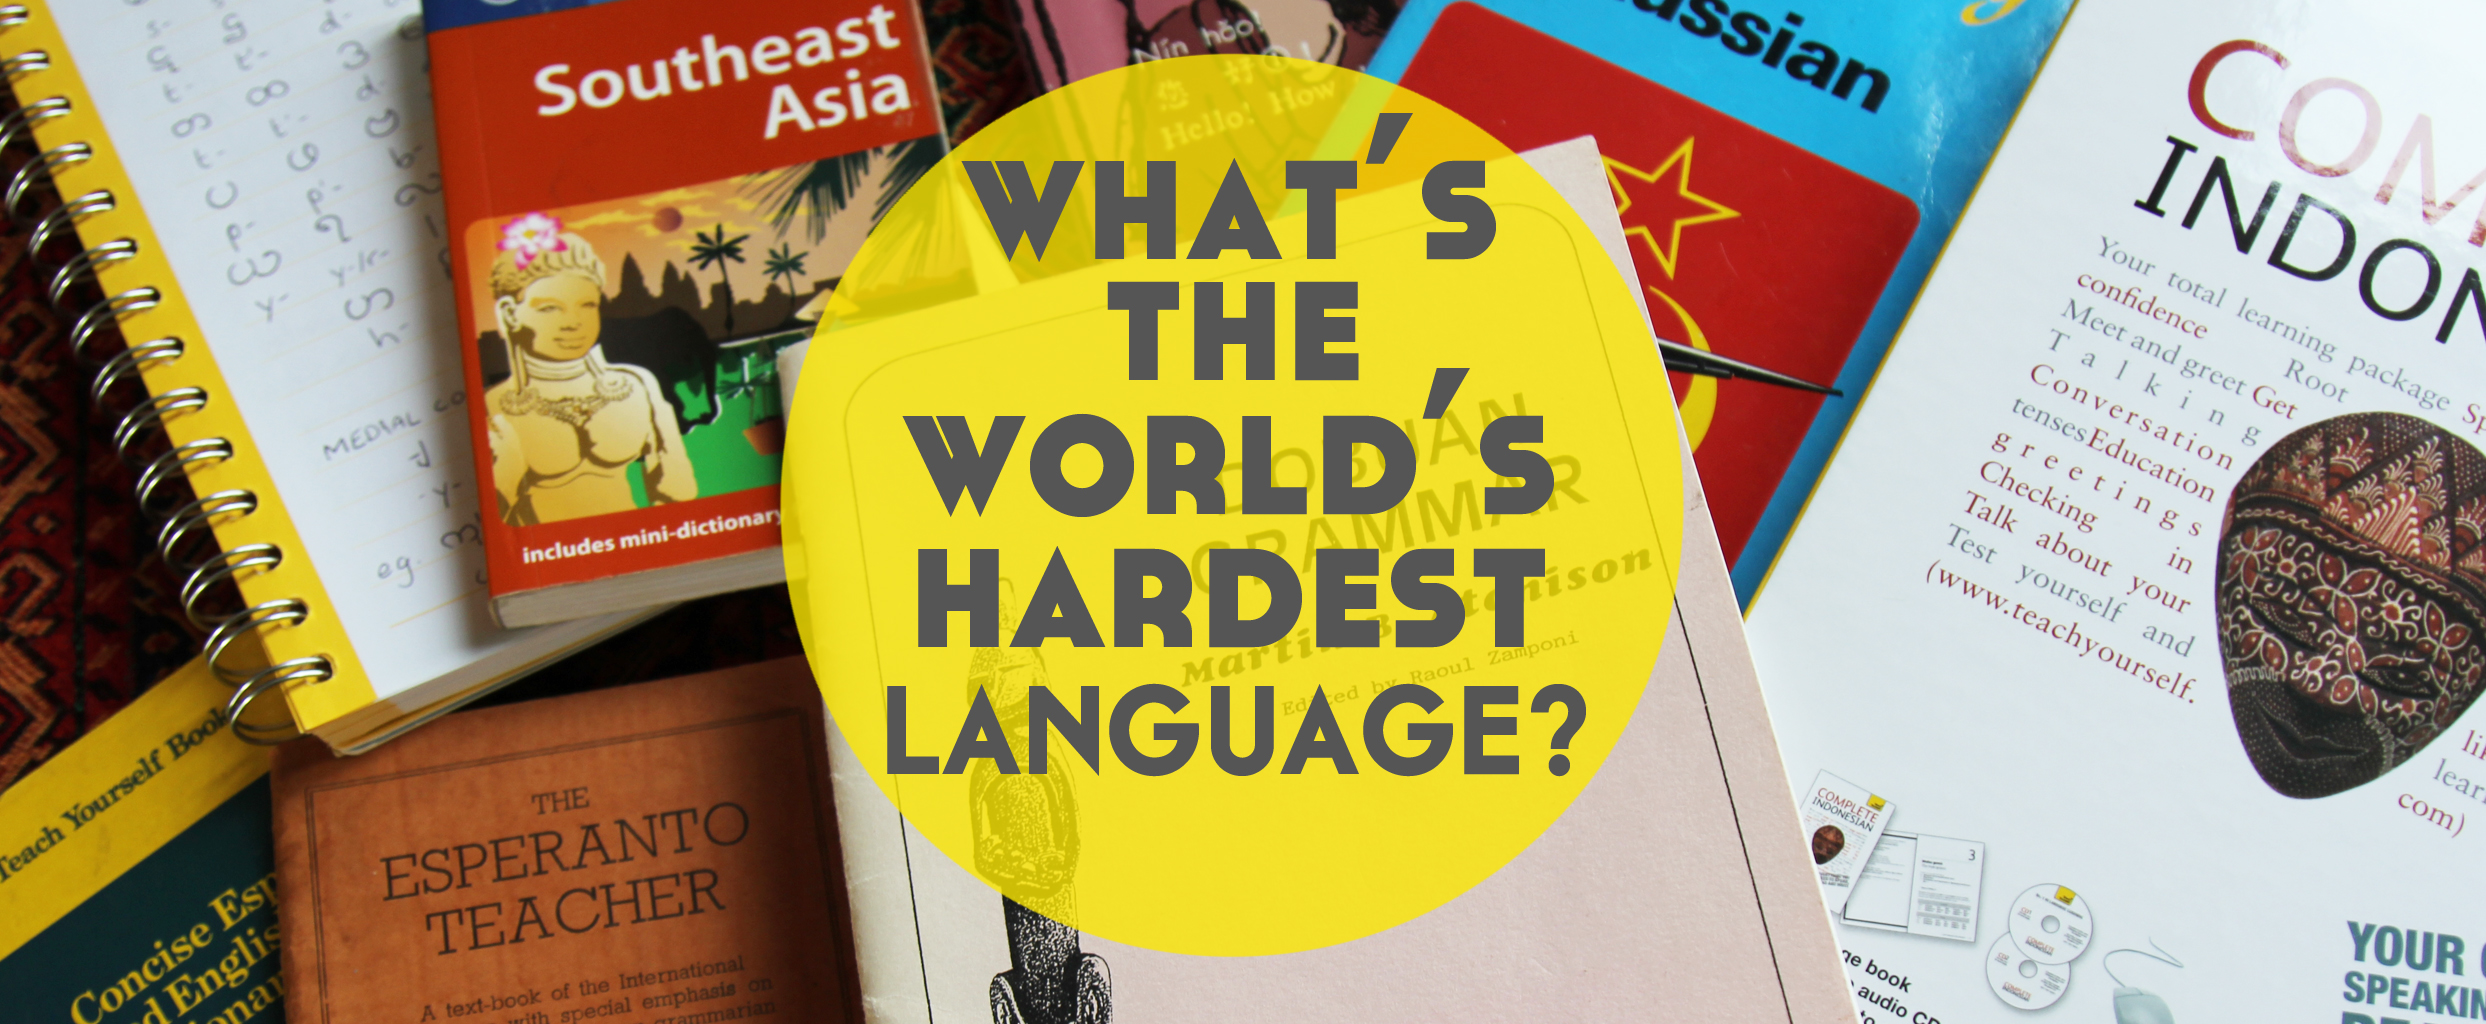 Whats The Most Difficult Language In The World Lindsay Does - Root languages of the world